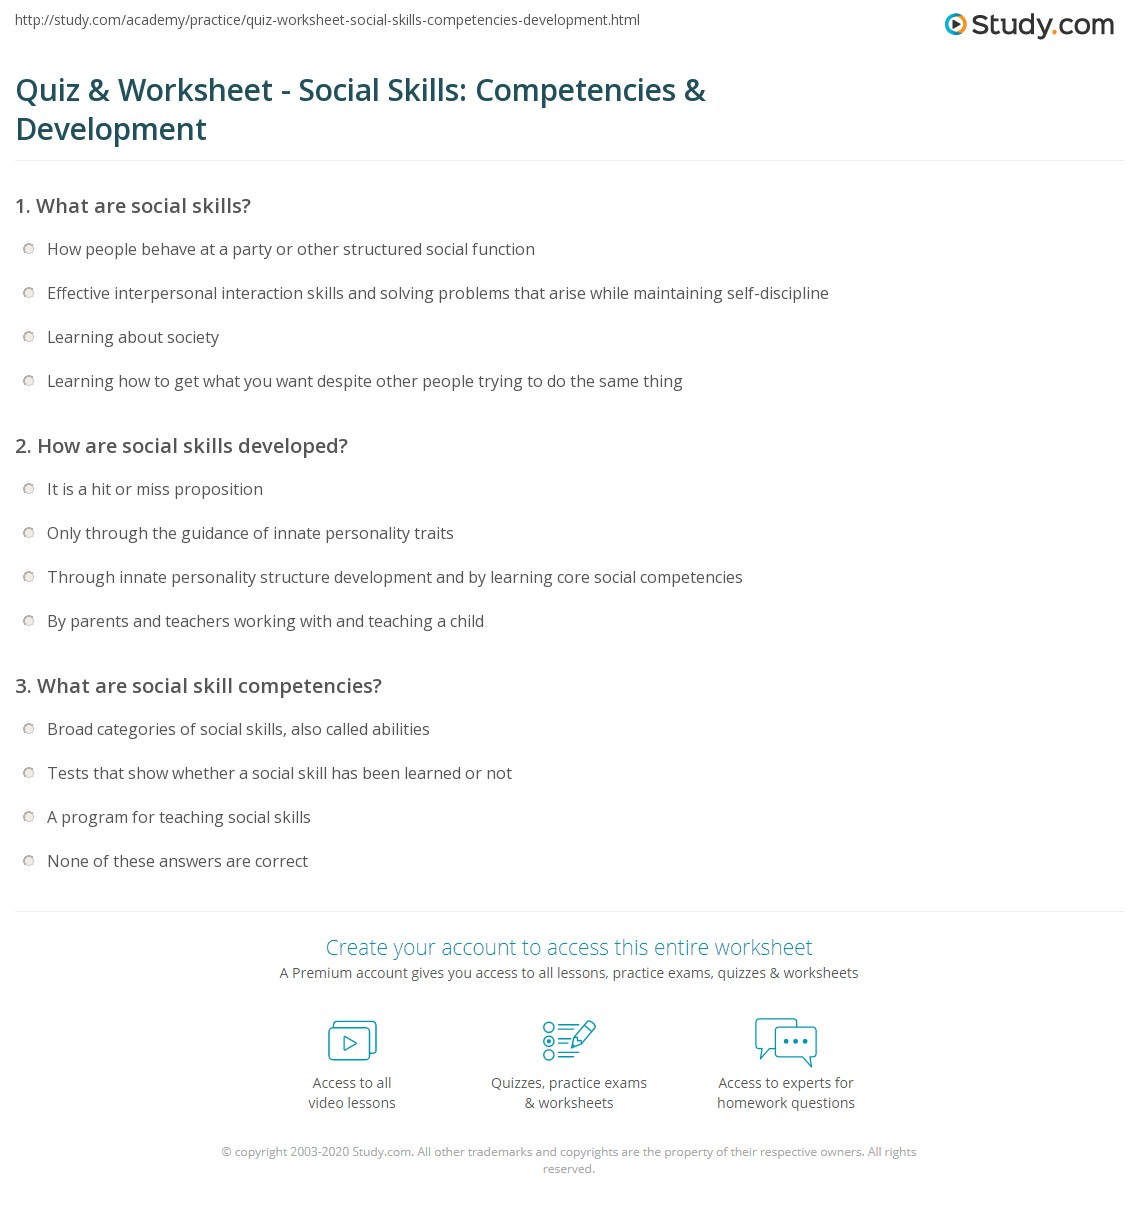 Core competency self-assessment templates self-assessment of.